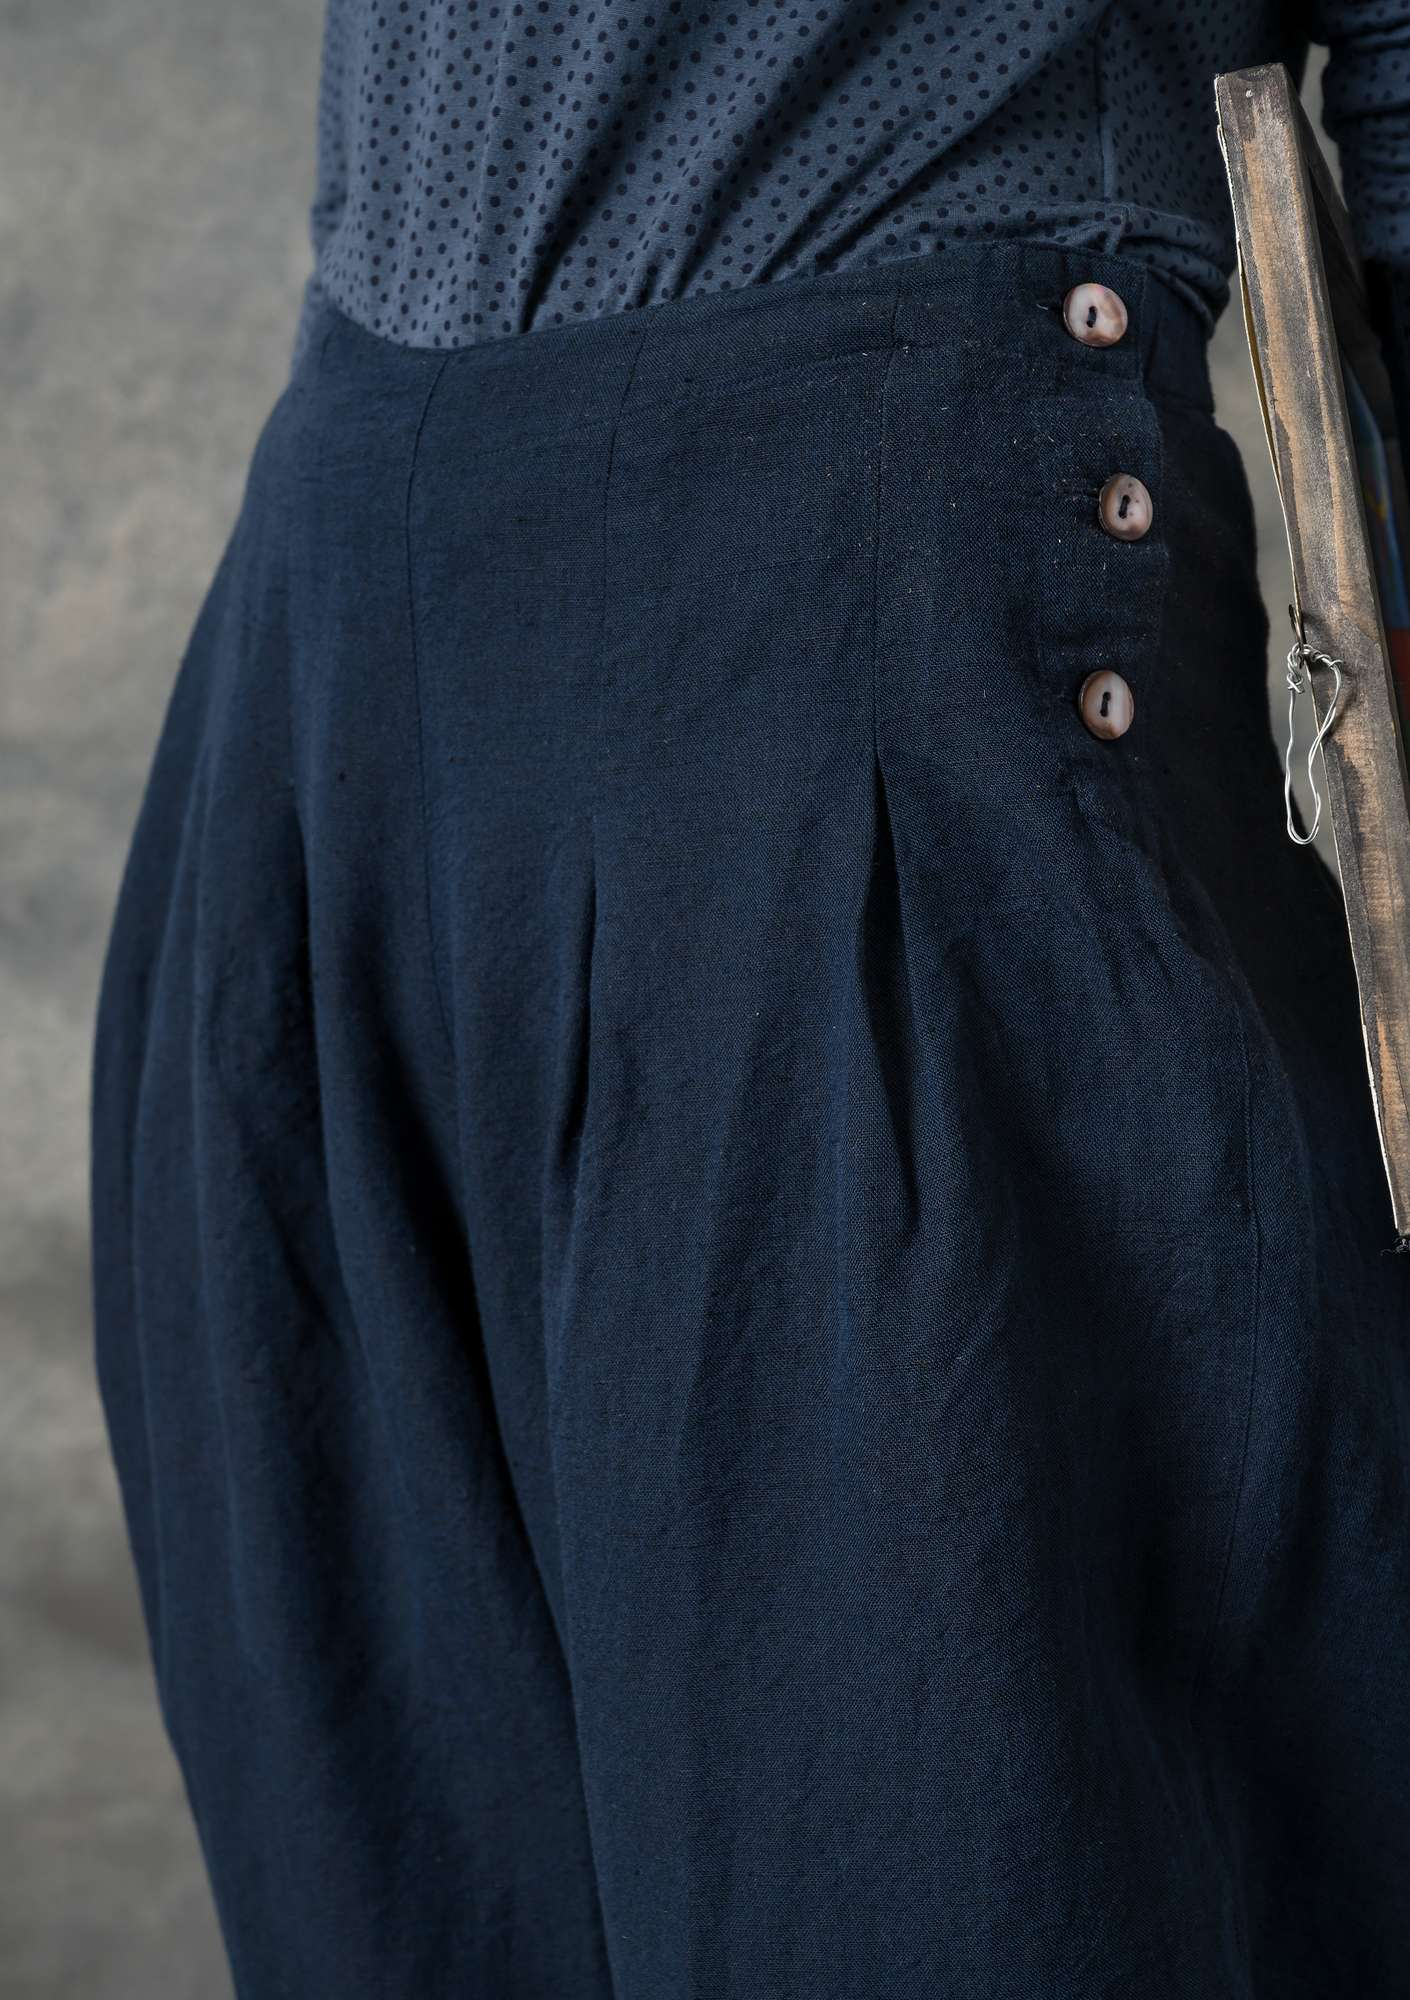 Trousers in cotton/linen chambrey dark indigo